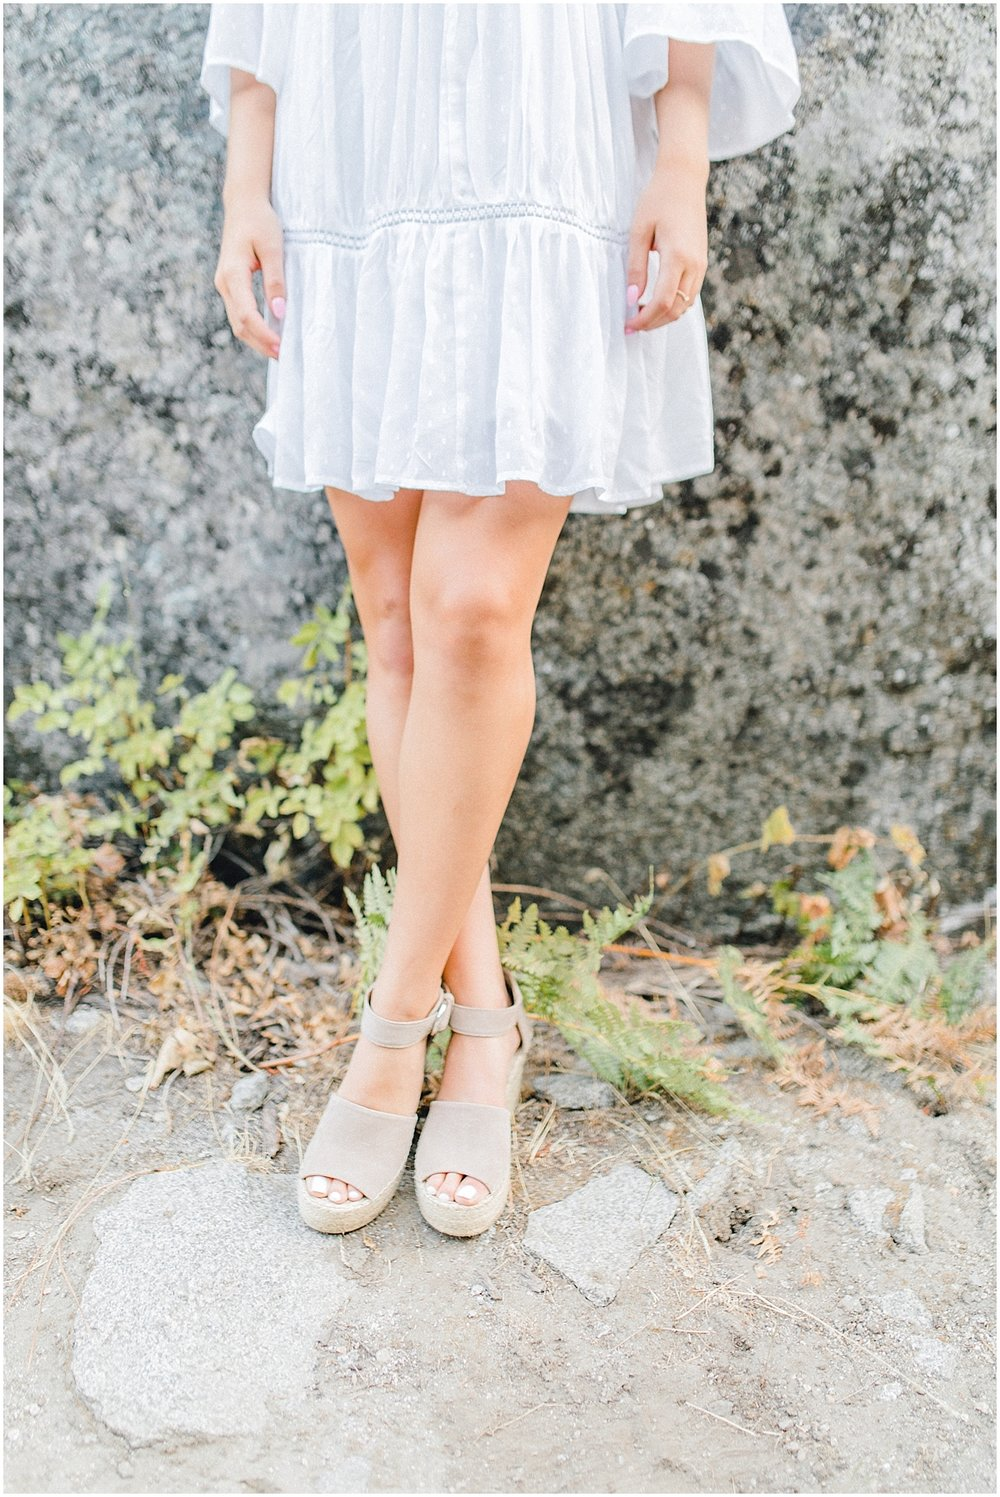 Emma Rose Company | Pacific Northwest Senior Portrait Photographer | Light and Airy Styled Senior Portraits | What to Wear to Senior Pictures | Kindred Presets | Seattle, Wenatchee and Portland Wedding and Portrait Photographer | Emma Rose21.jpg